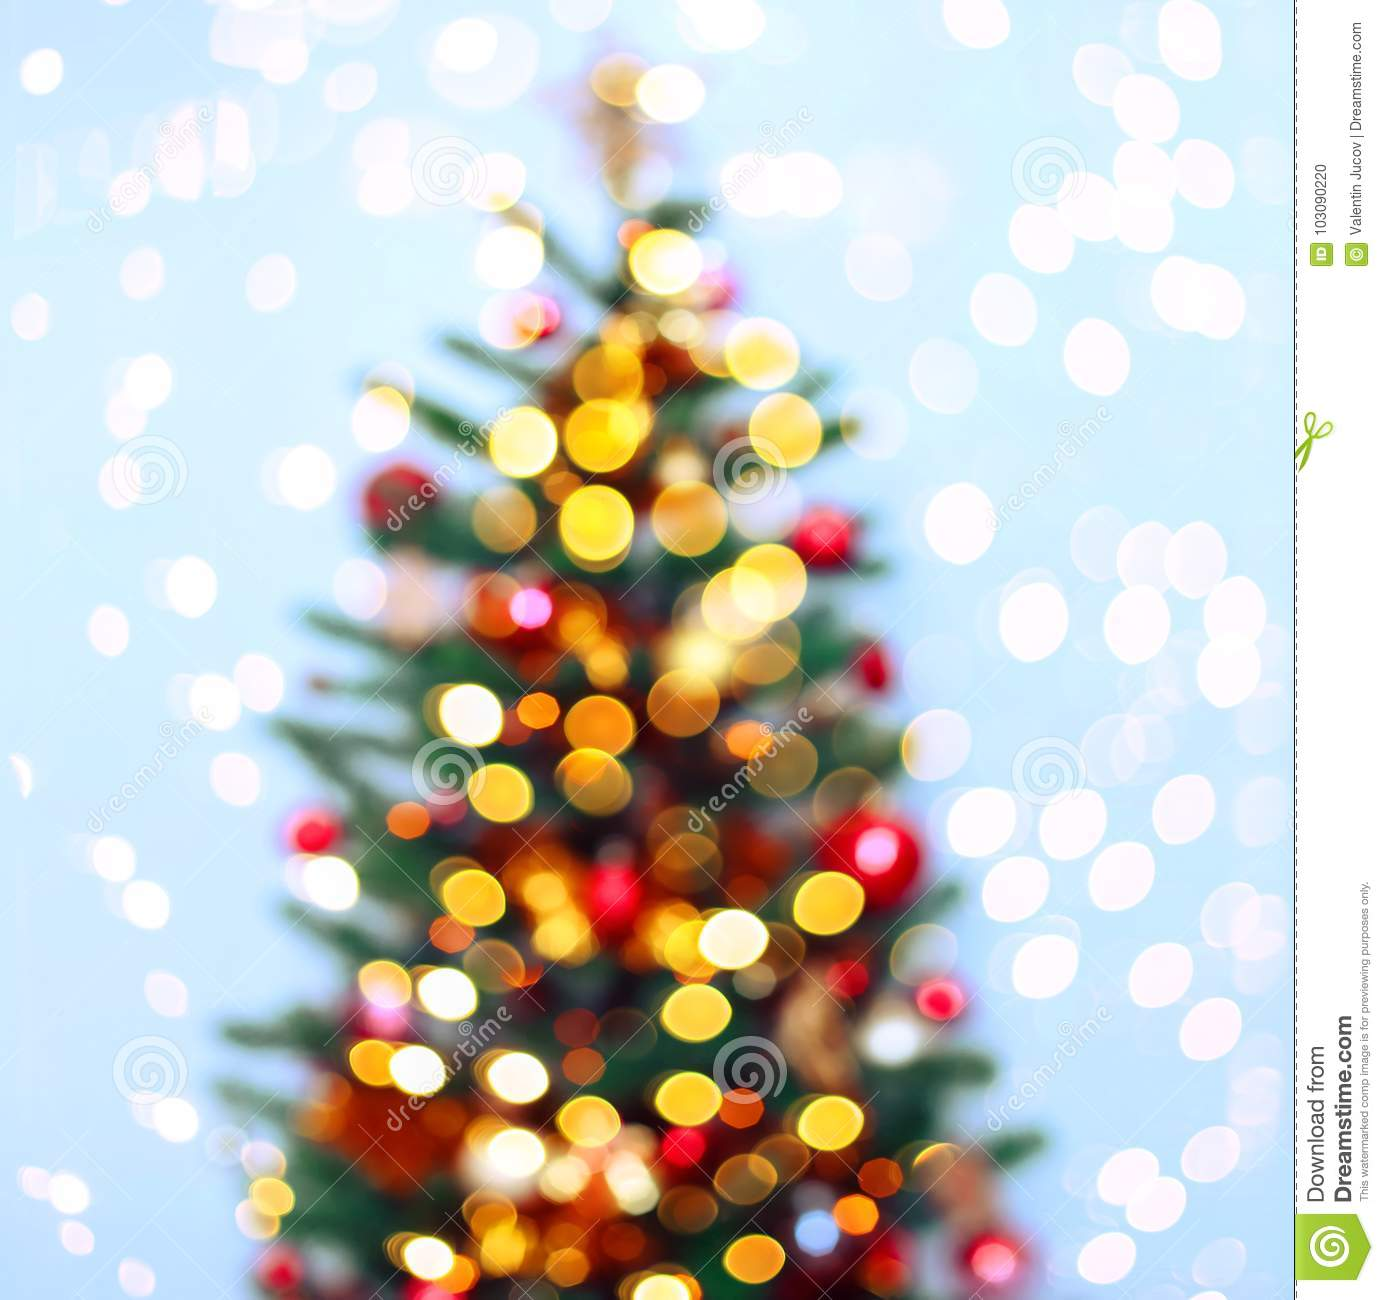 Christmas tree background with blurred, sparking, glowing. Happy New Year and Xmas theme.